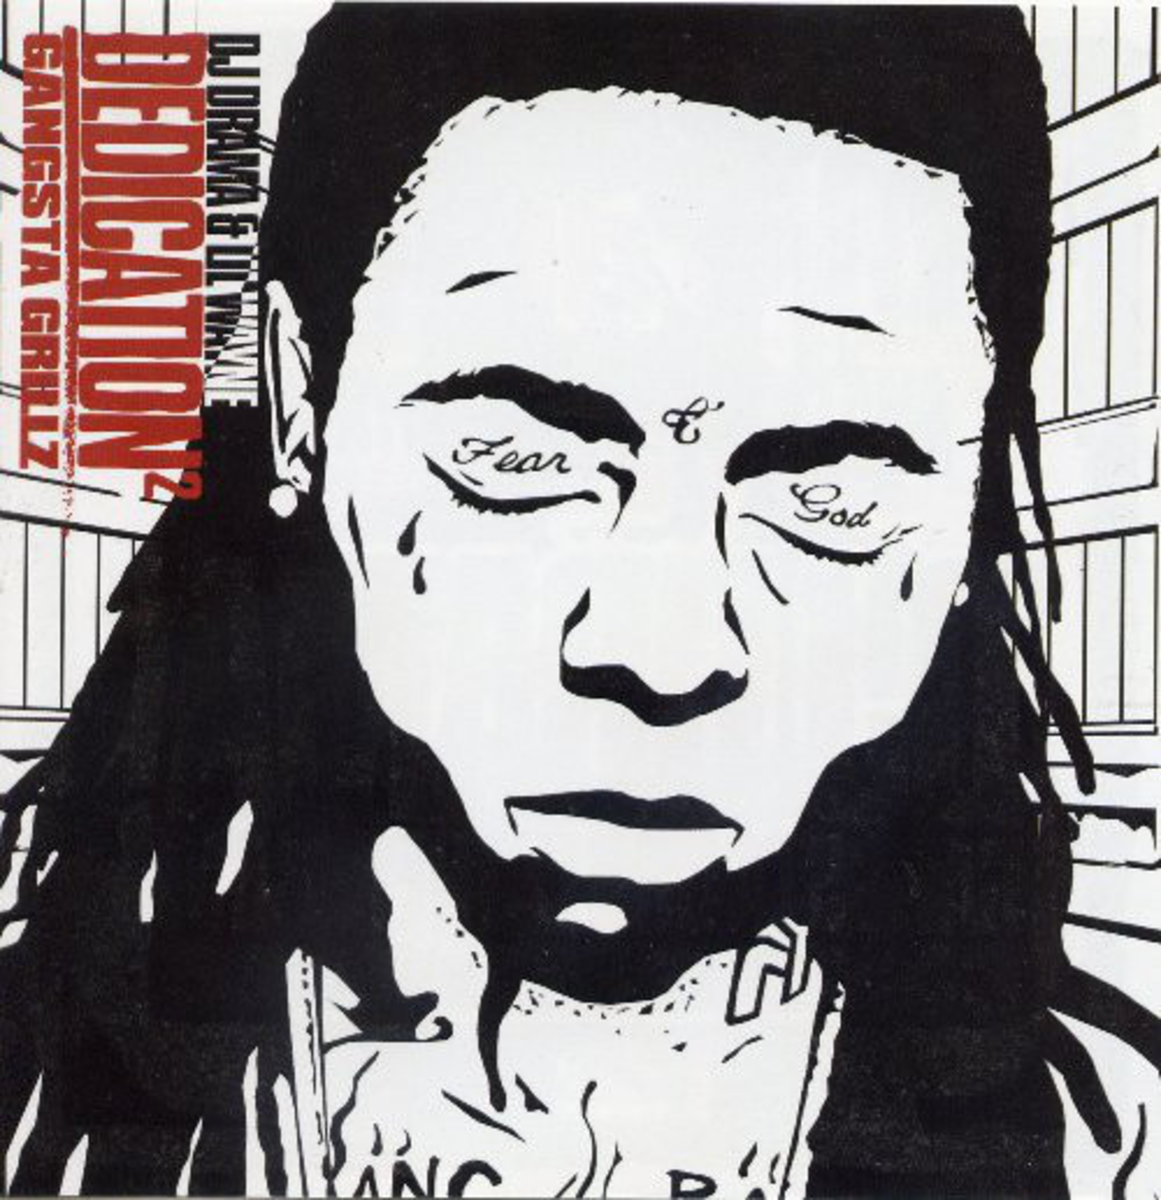 Lil Wayne's 2006 mixtape, Dedication 2.